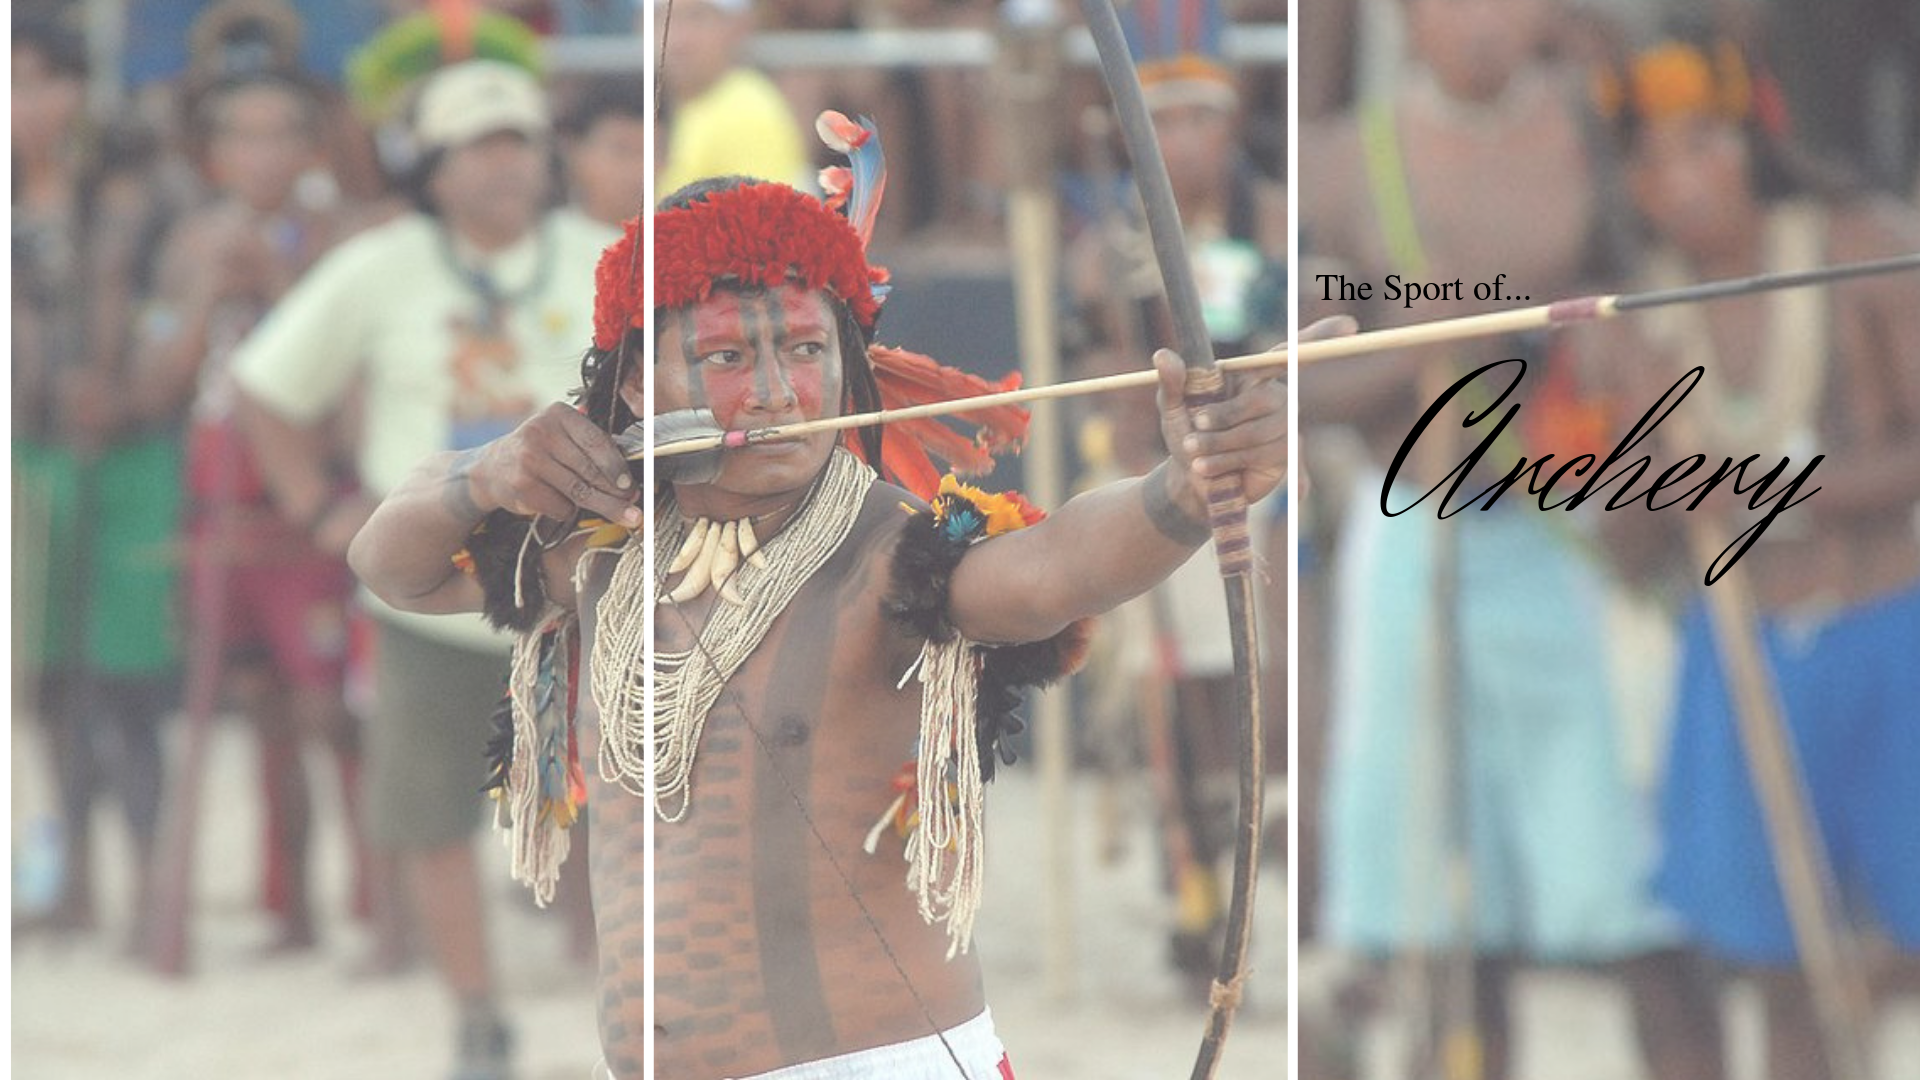 Check out the Indigenous Sport of 'Archery' #NoCriticsJustSports